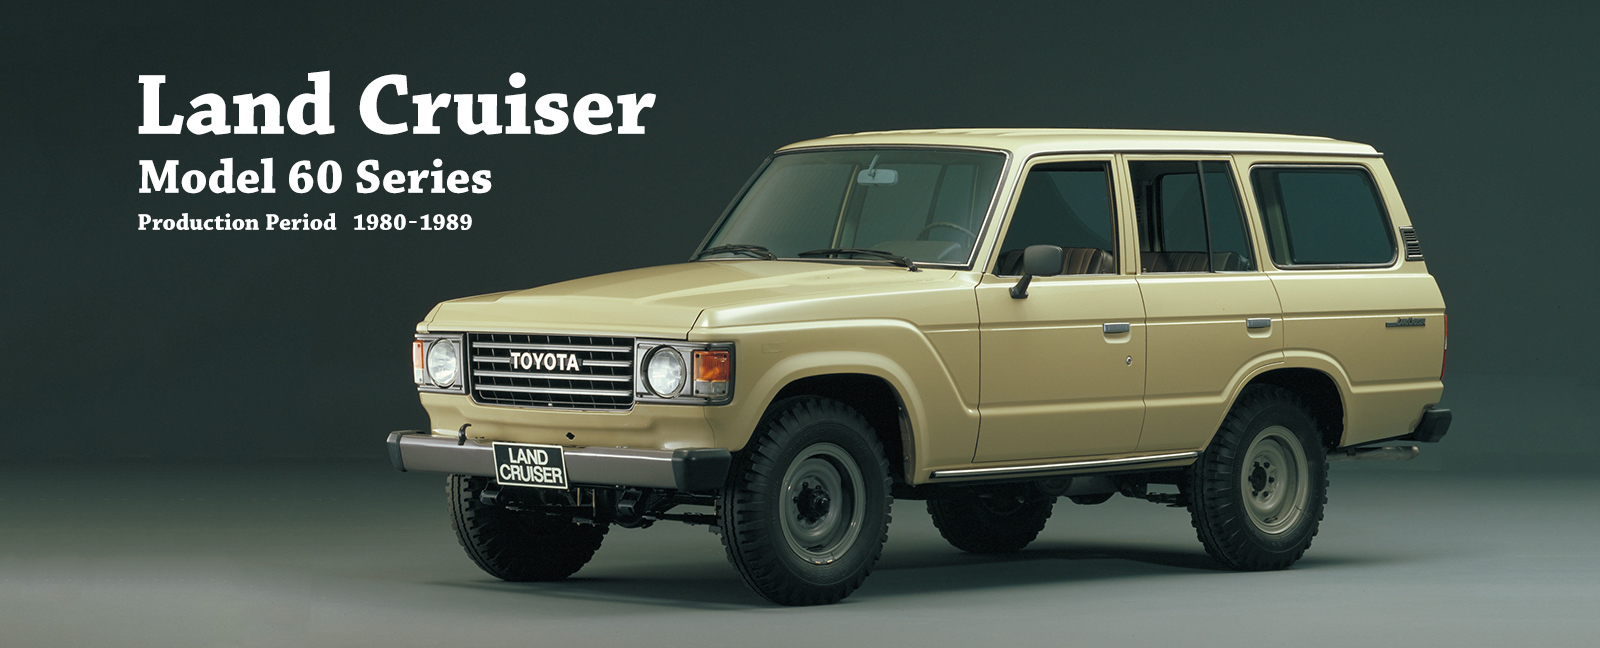 Vehicle heritage land cruiser model 60 series